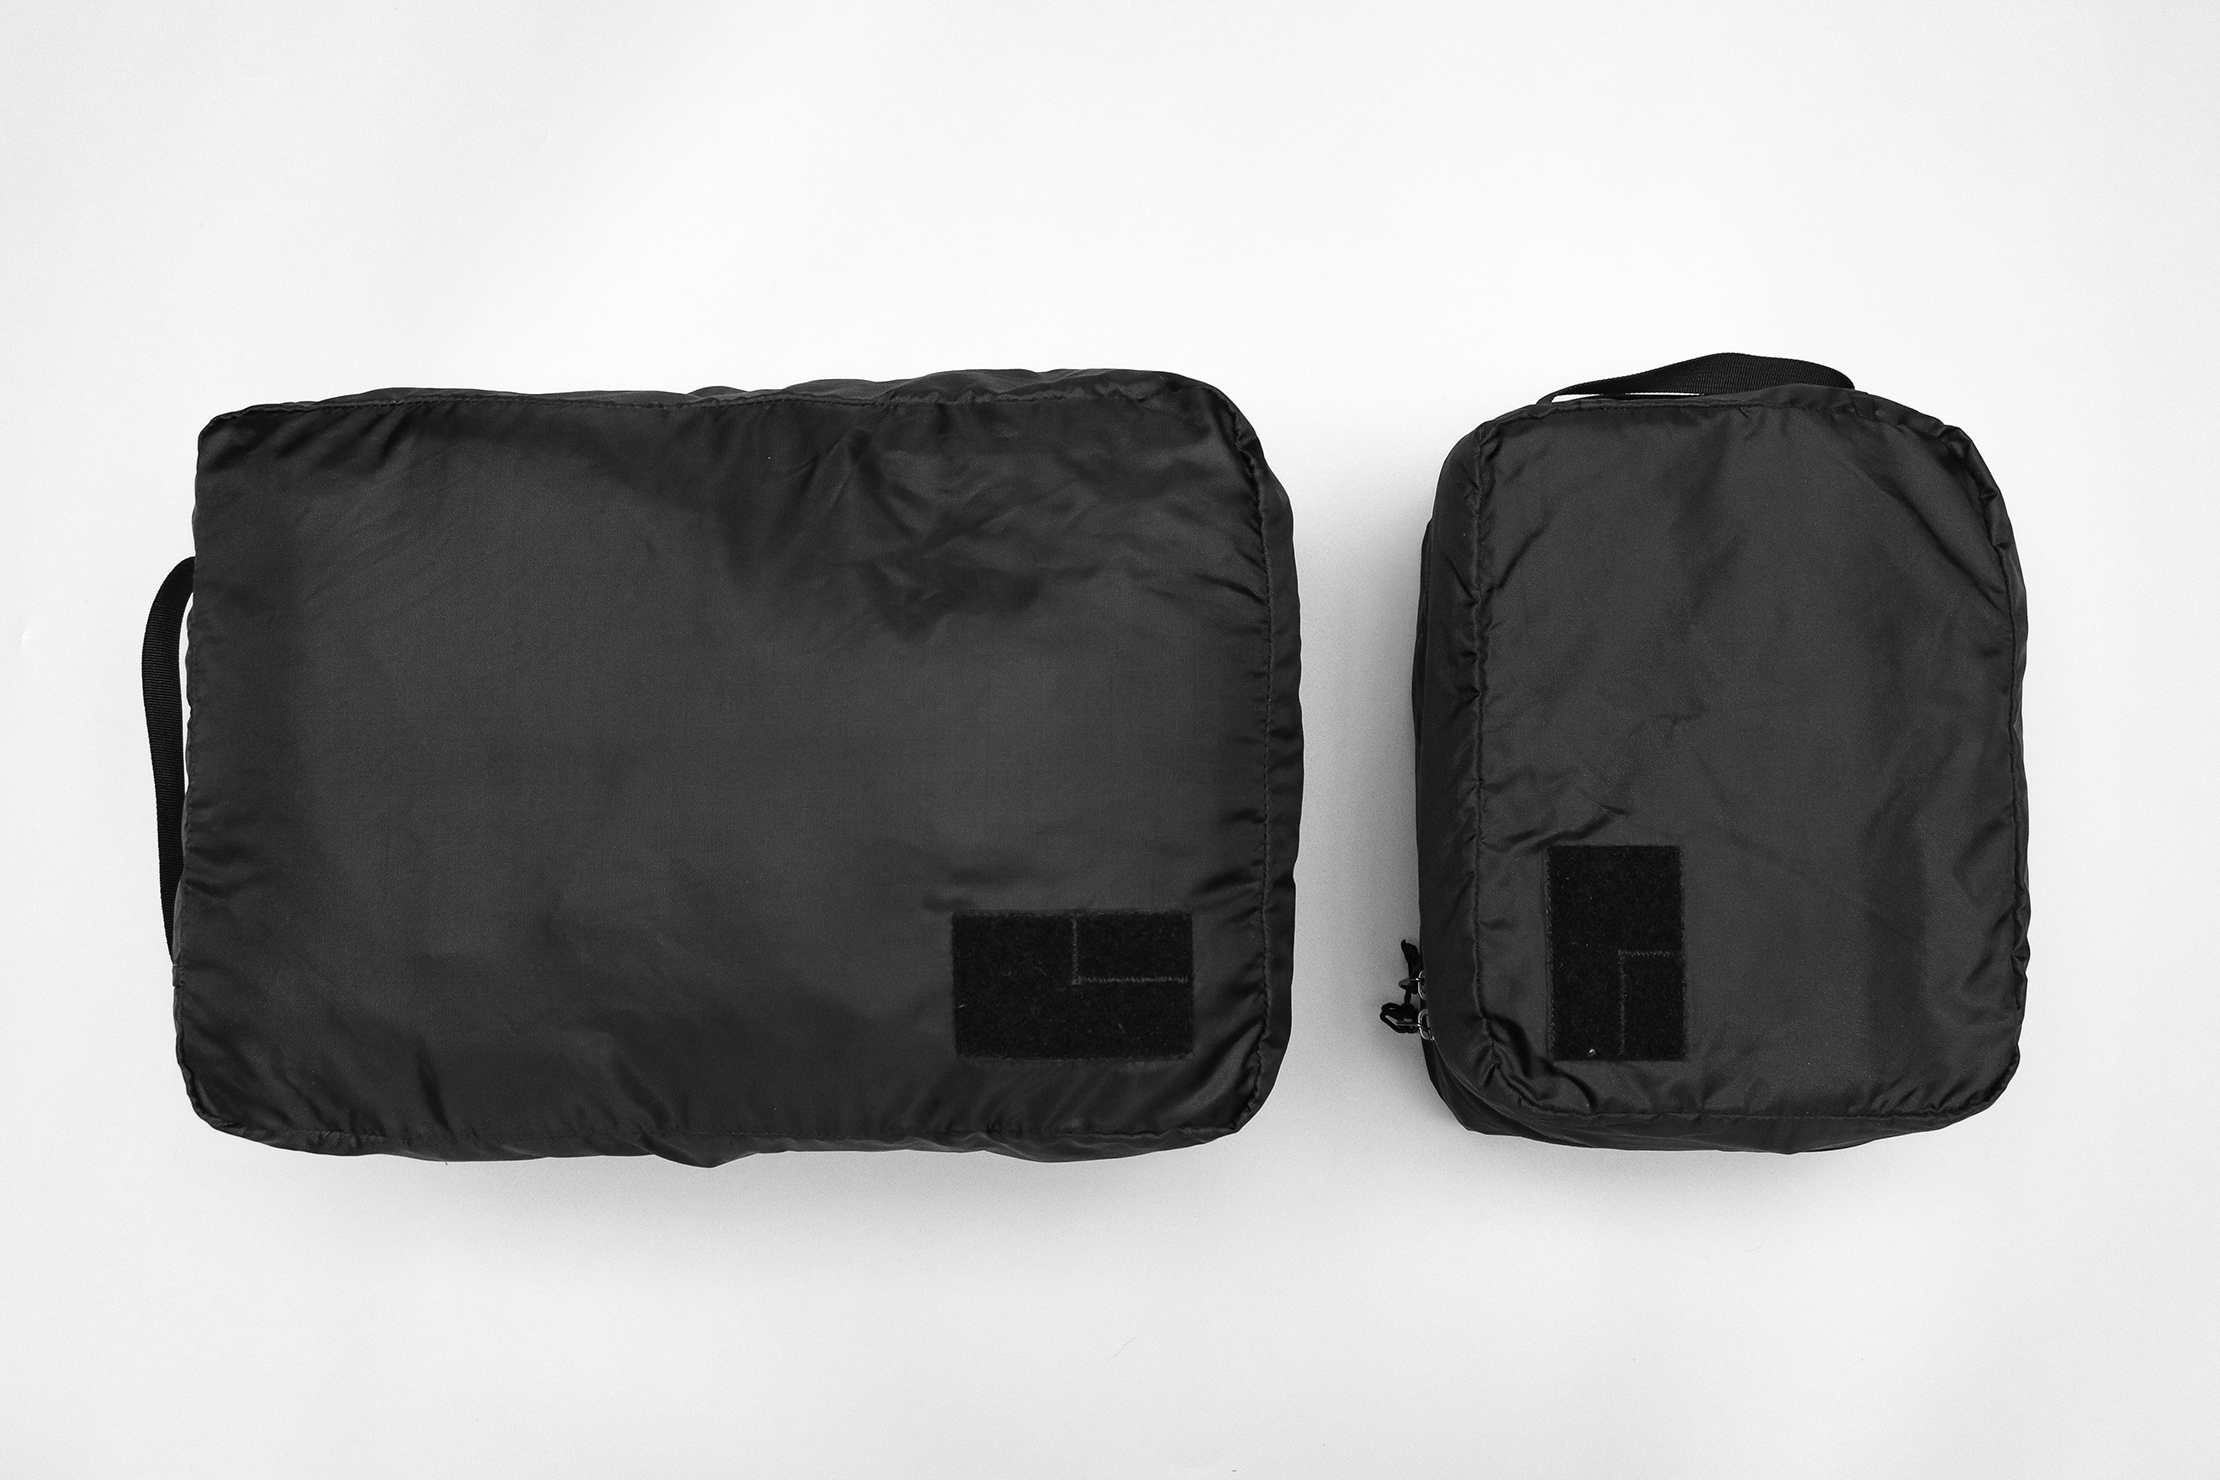 GORUCK Packing Cubes 10L And 20L Sizes